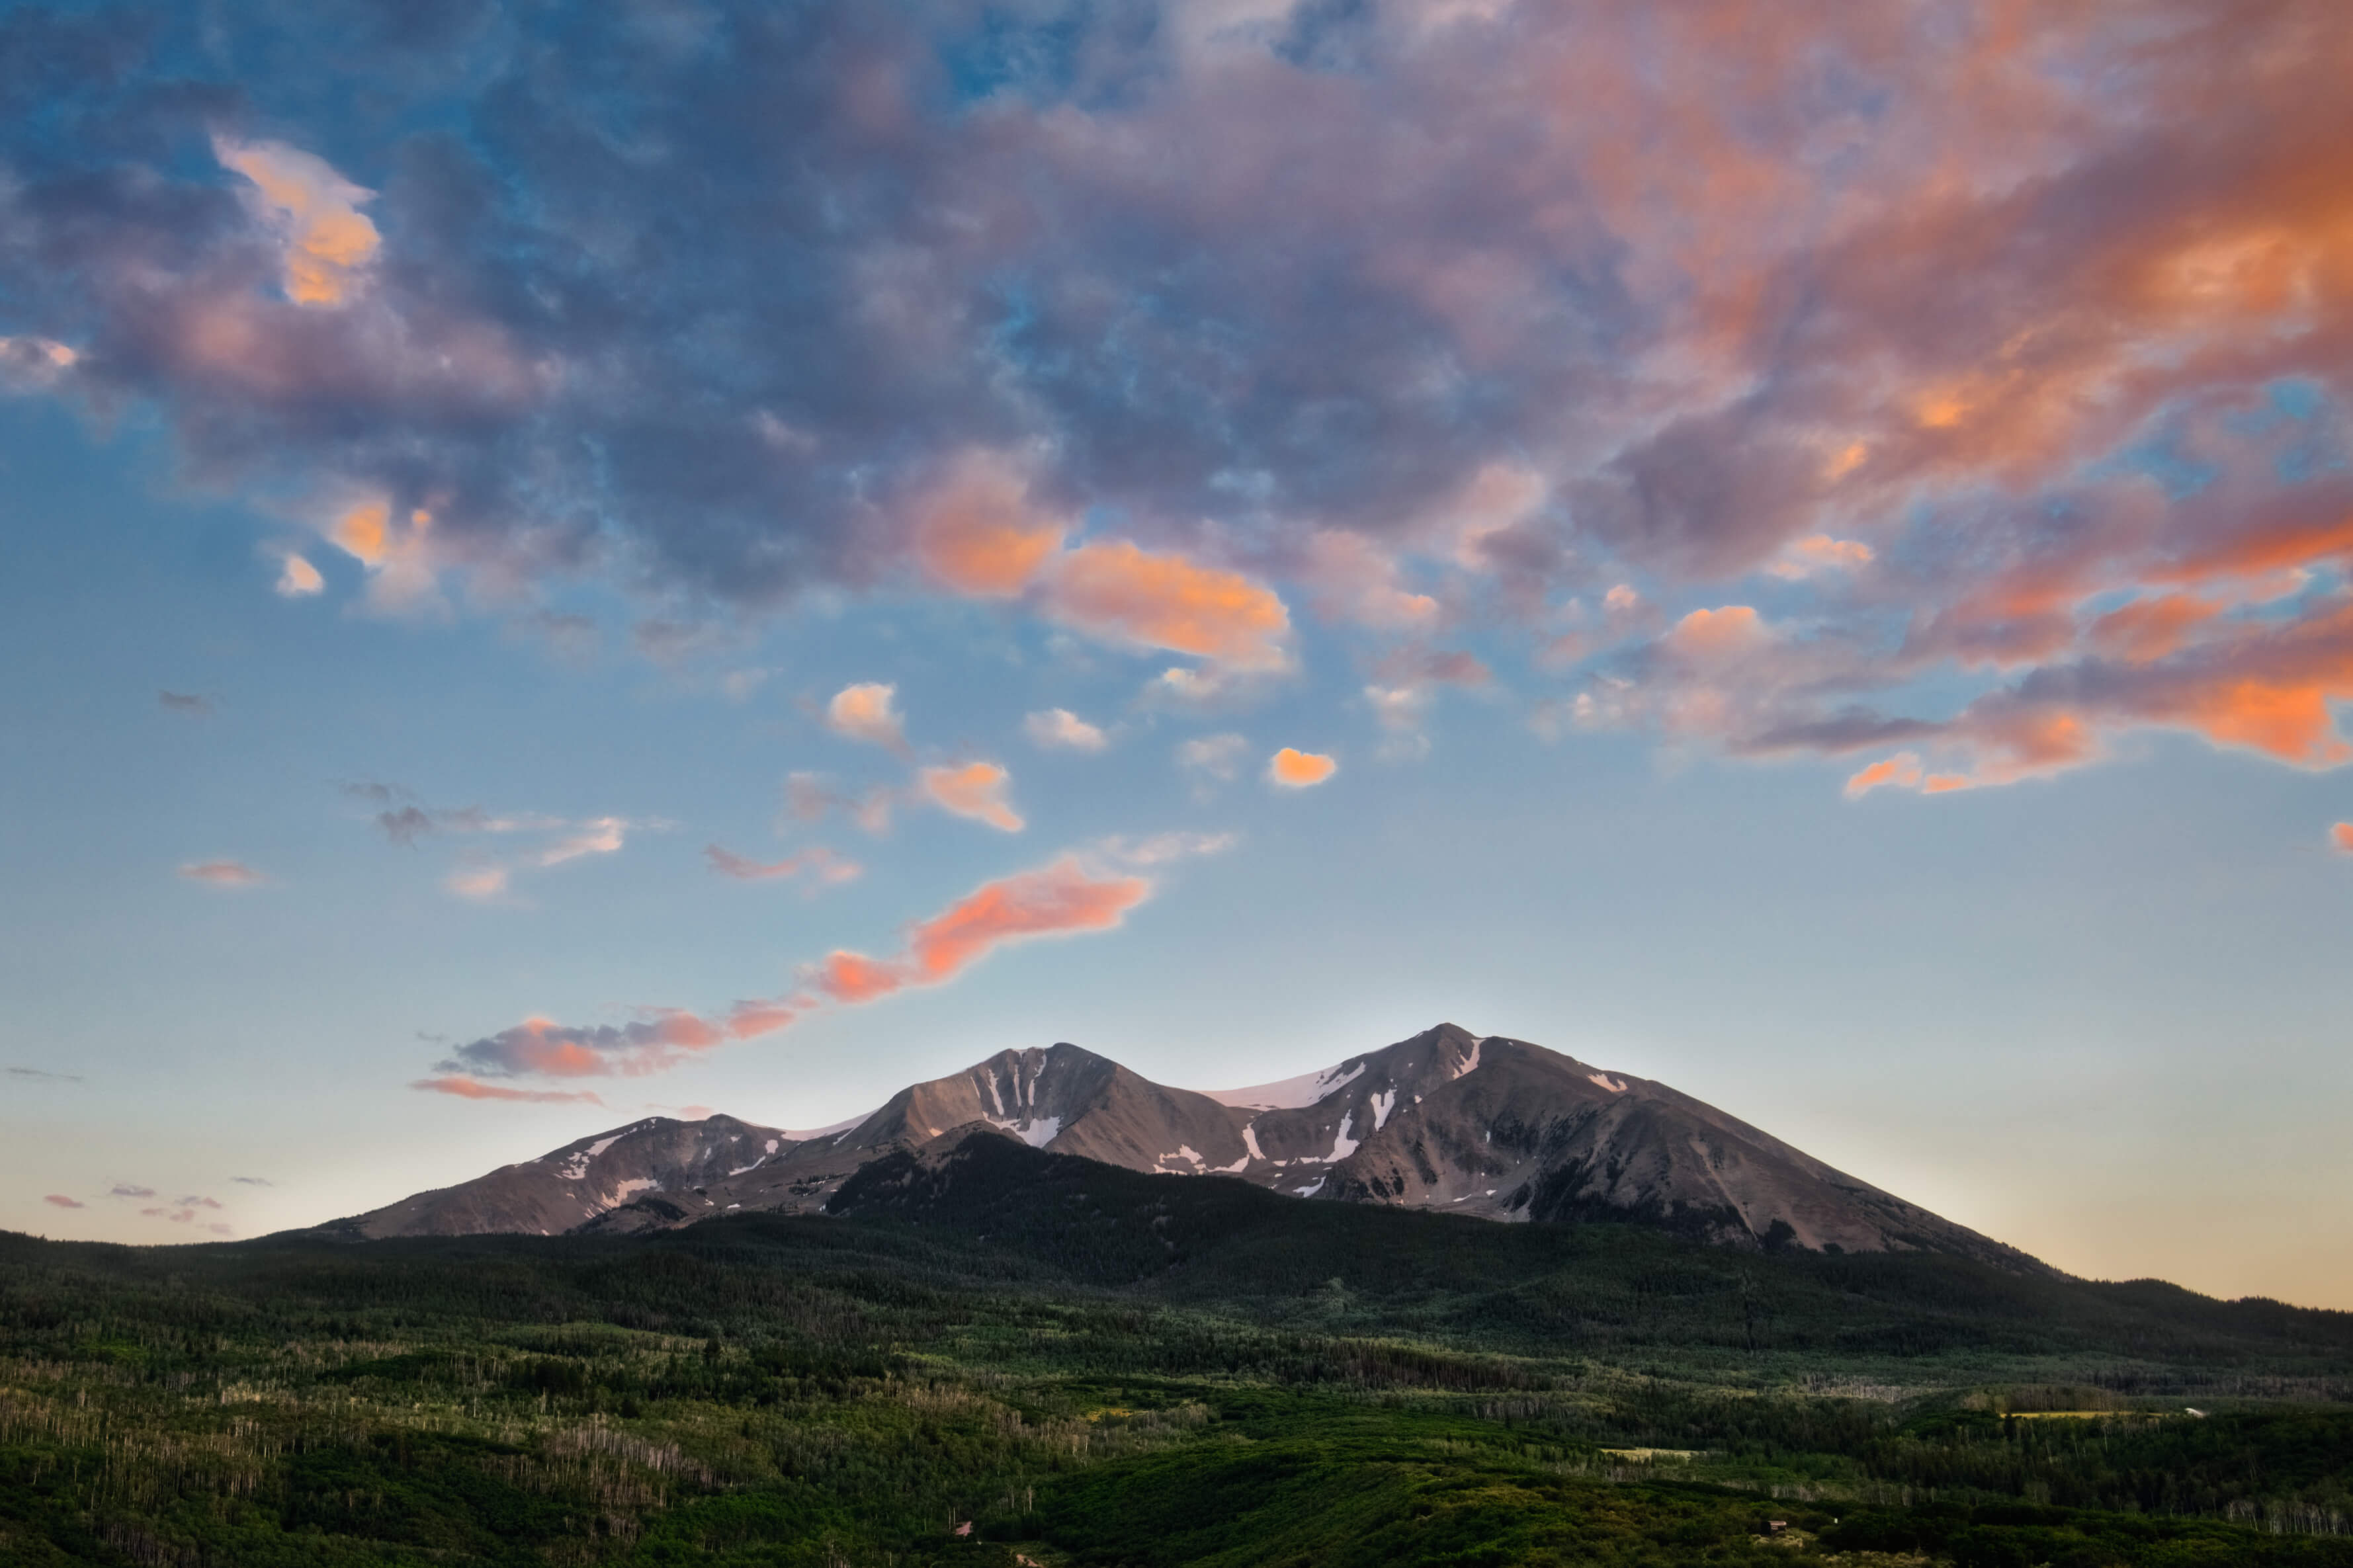 Mount Sopris photographed on the Intentionally Lost cycling tour and photography workshop